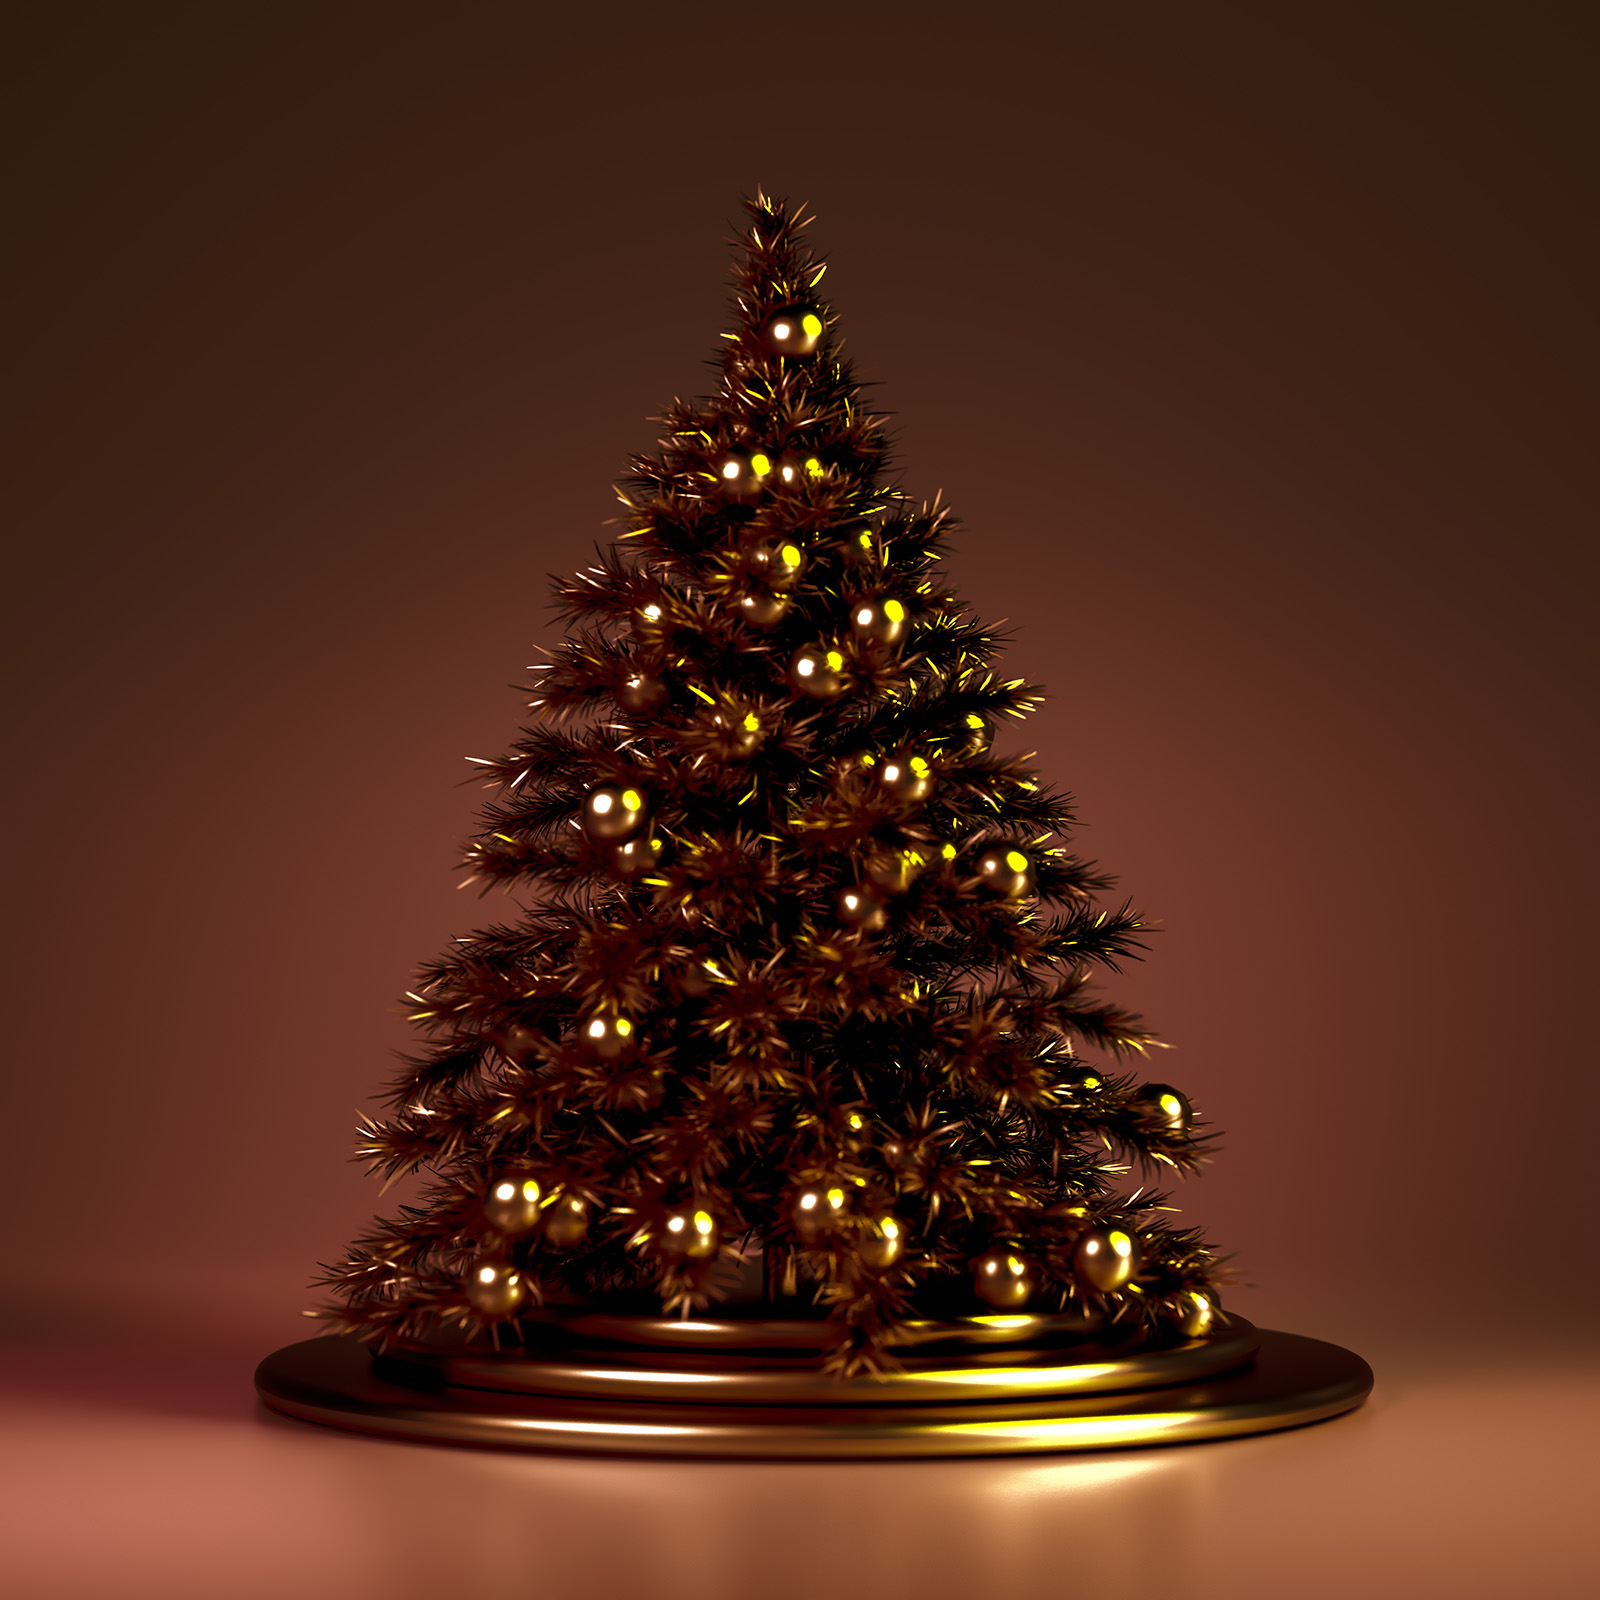 Golden XMAS tree